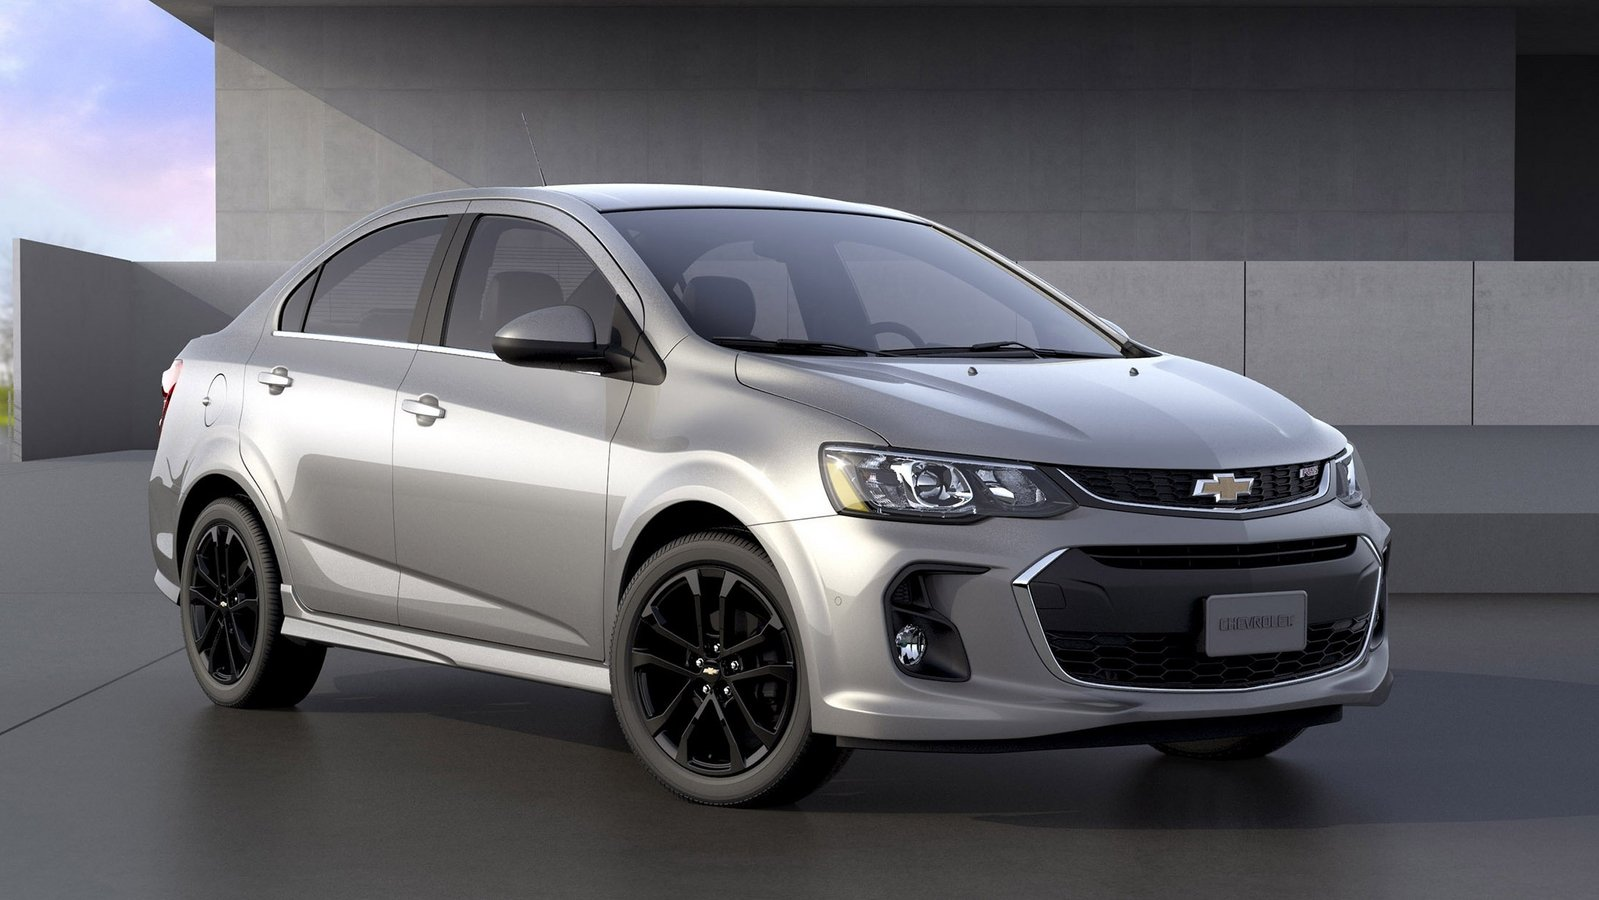 2017 chevrolet sonic review top speed. Black Bedroom Furniture Sets. Home Design Ideas